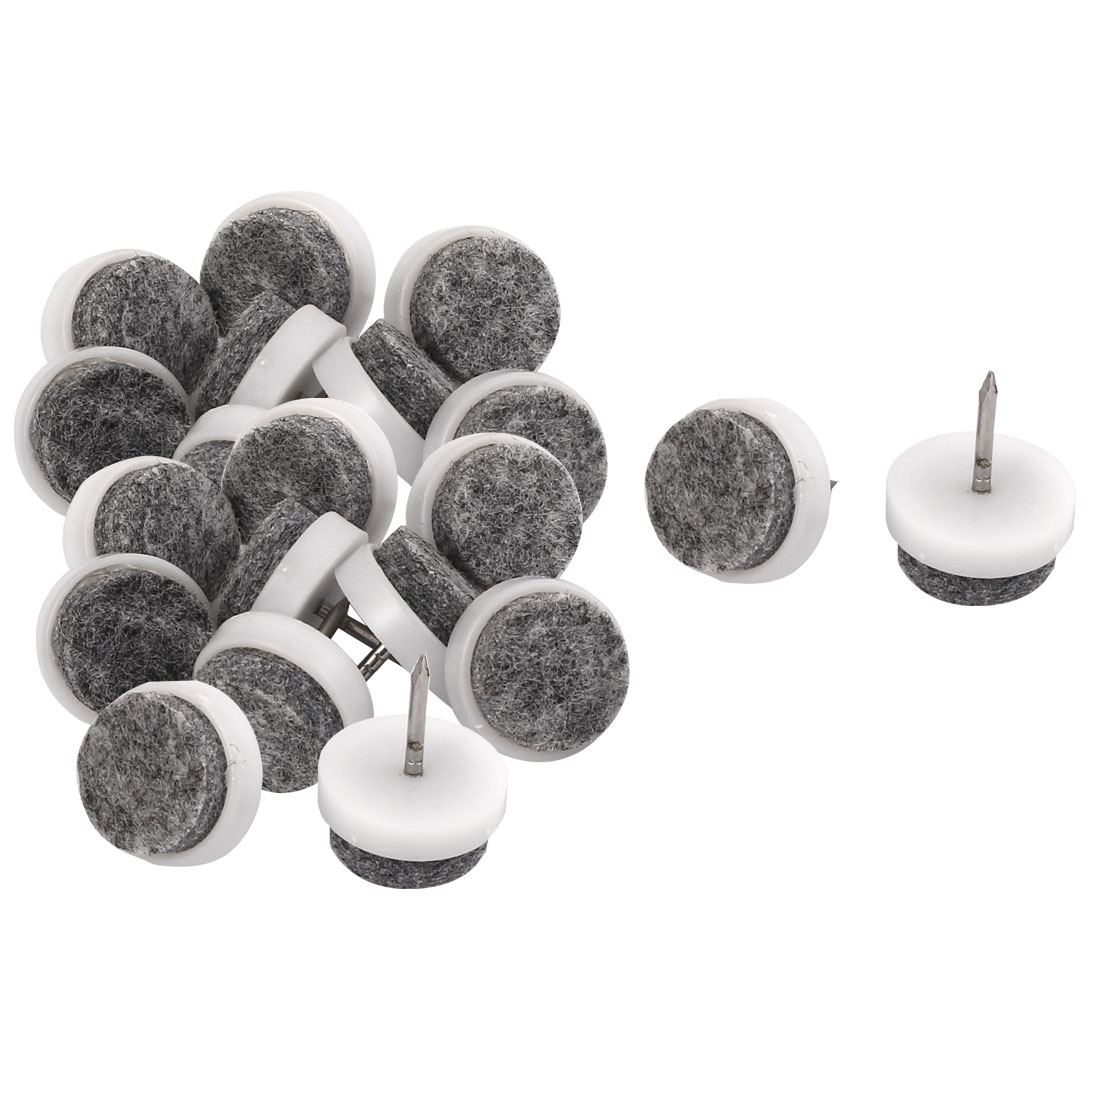 Round Anti Slip Furniture Leg Felt Pad DIY Nail Floor Protector 17mm Dia 20pcs